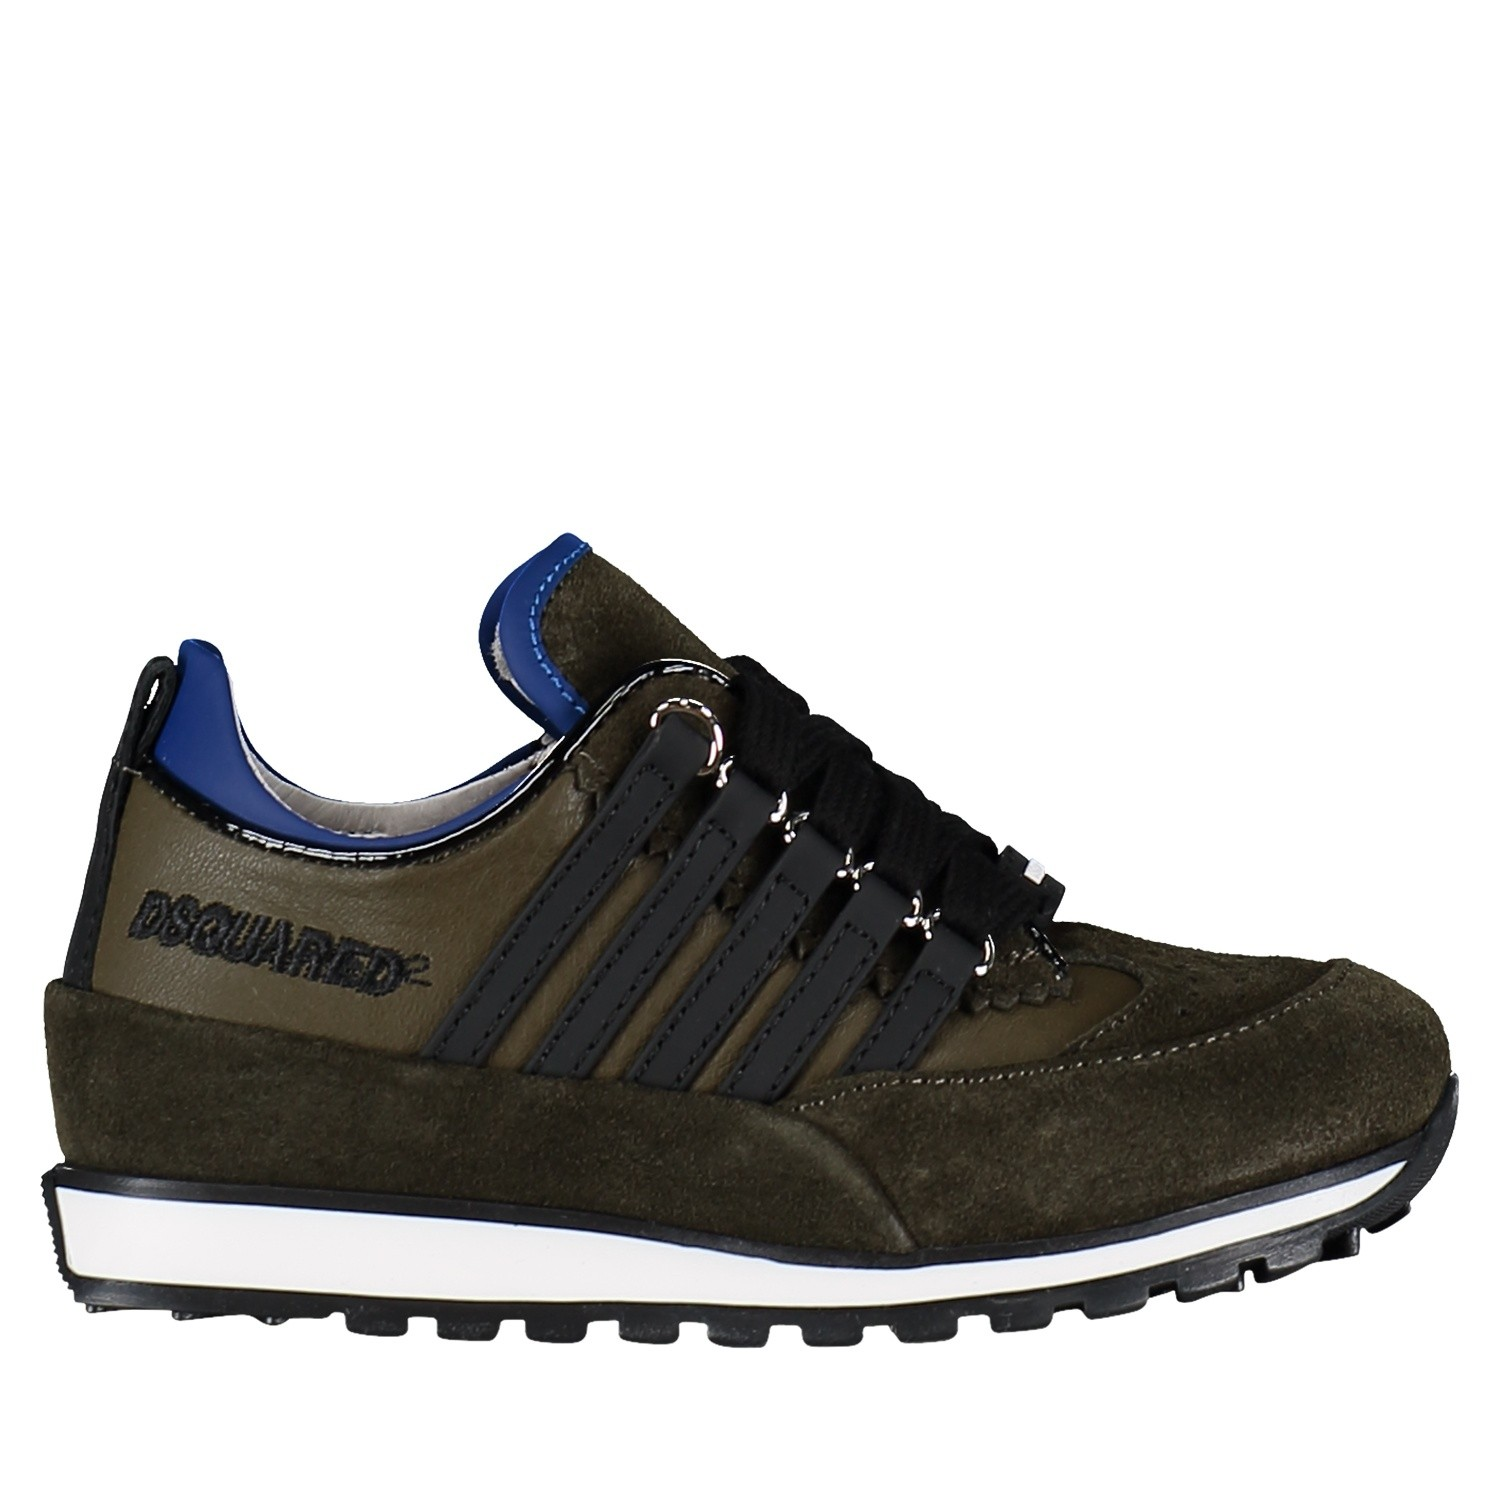 Picture of Dsquared2 57142 kids sneakers green